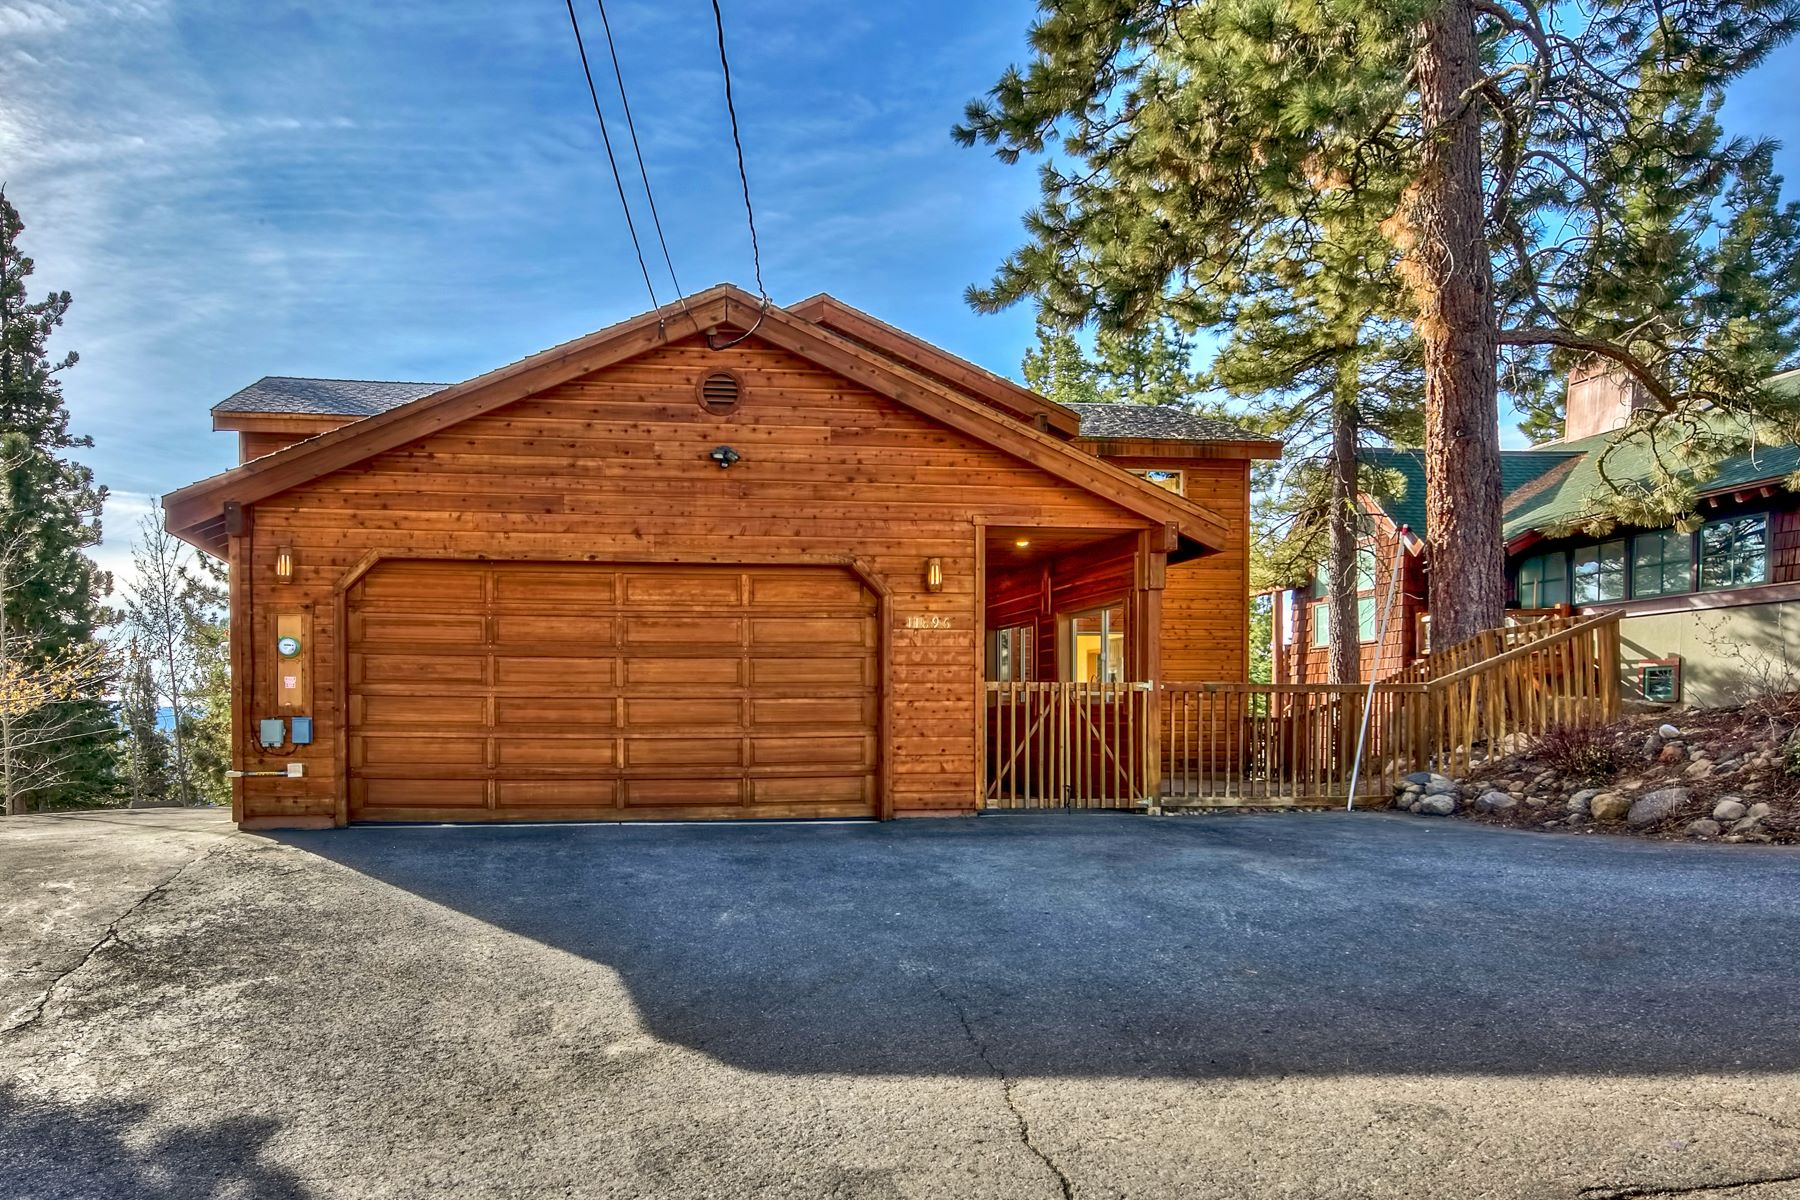 Additional photo for property listing at 11896 Skislope Way, Truckee California 96161 11896 Skislope Way Truckee, California 96161 United States